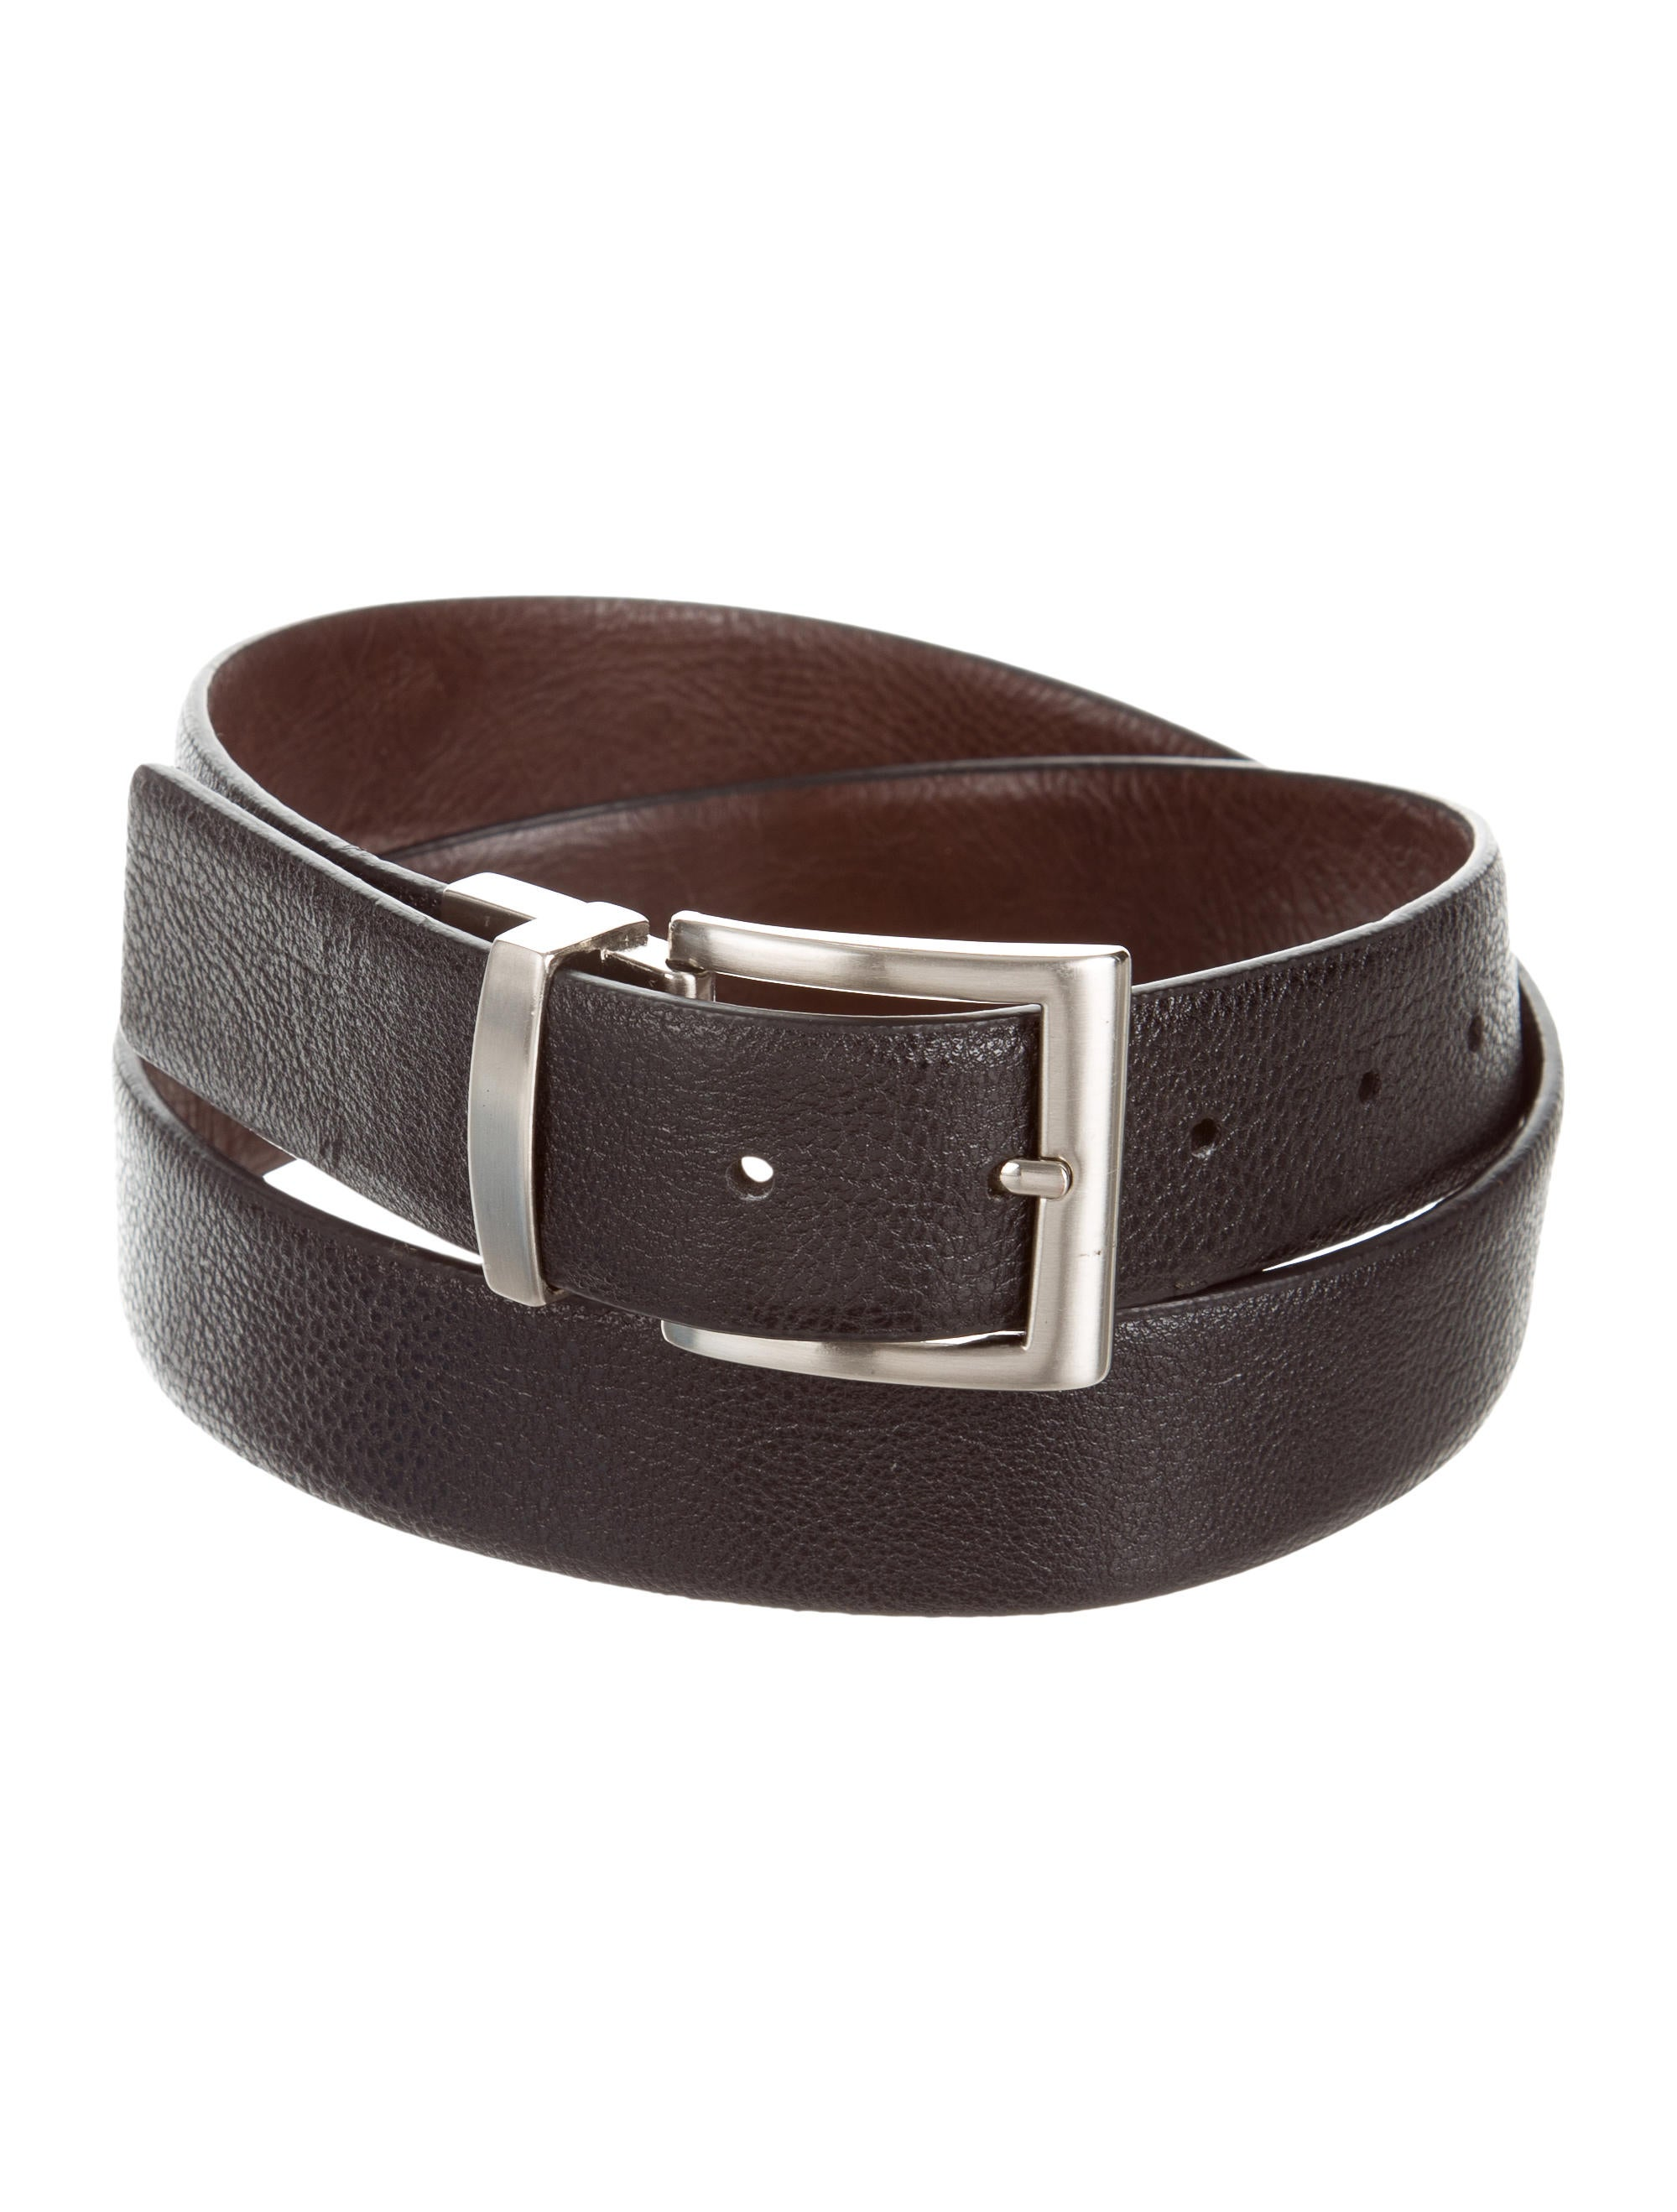 michael kors silver tone vegan leather belt accessories